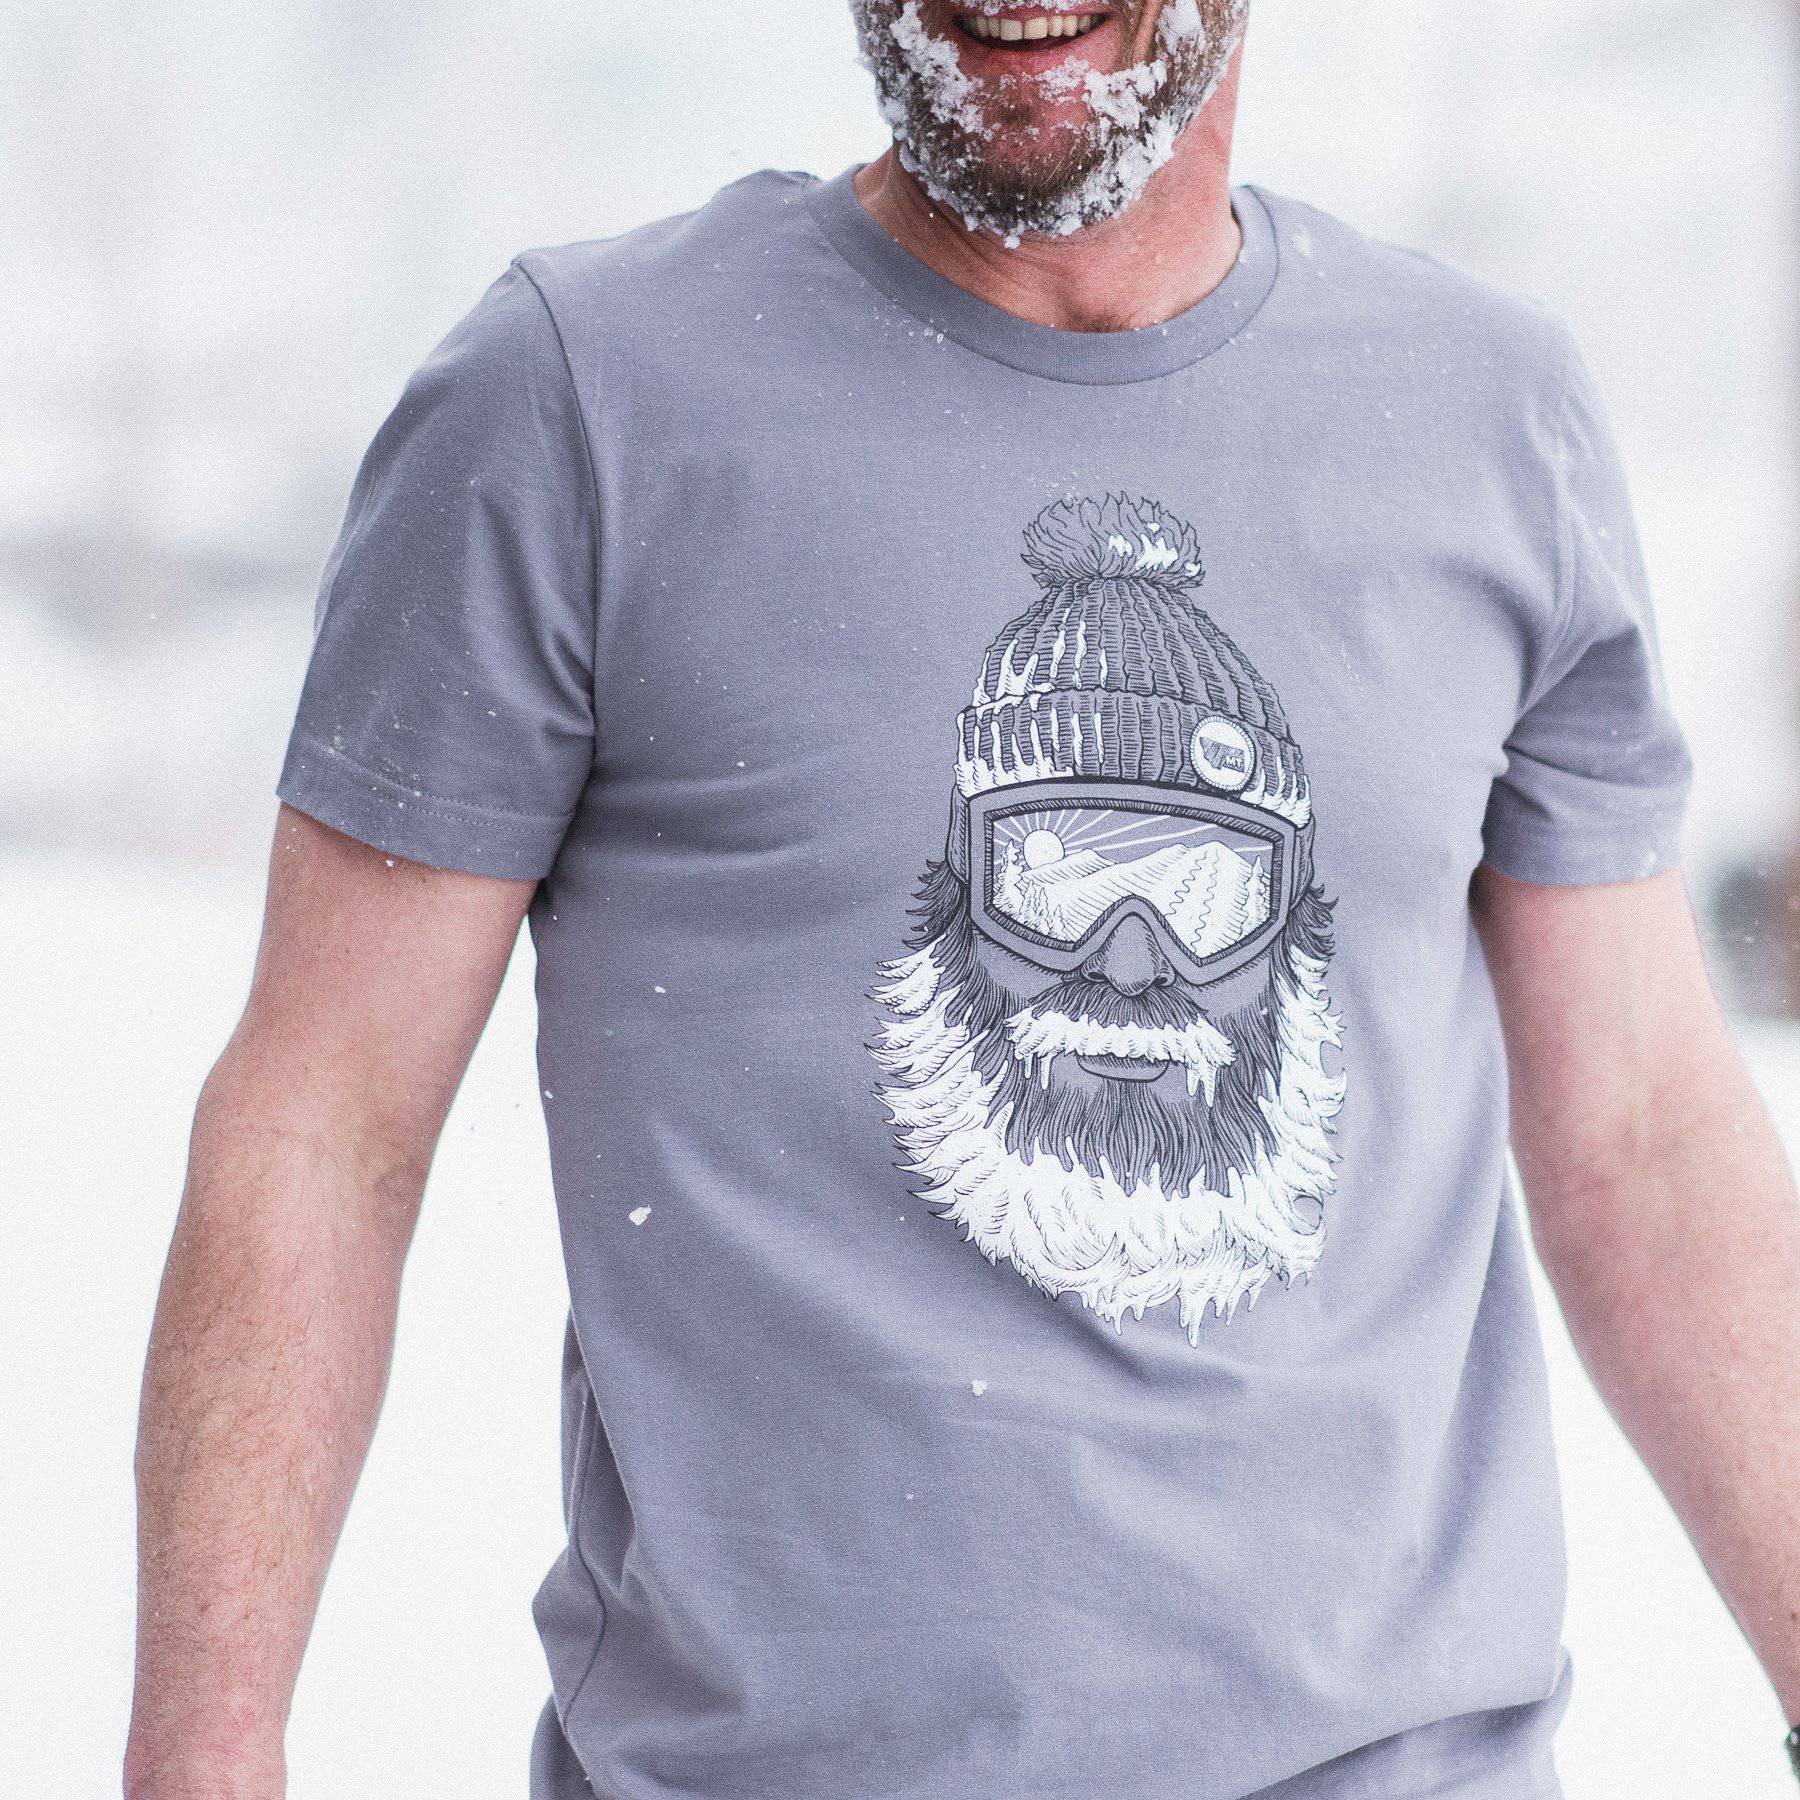 Snow Beard - MONTANA SHIRT CO.